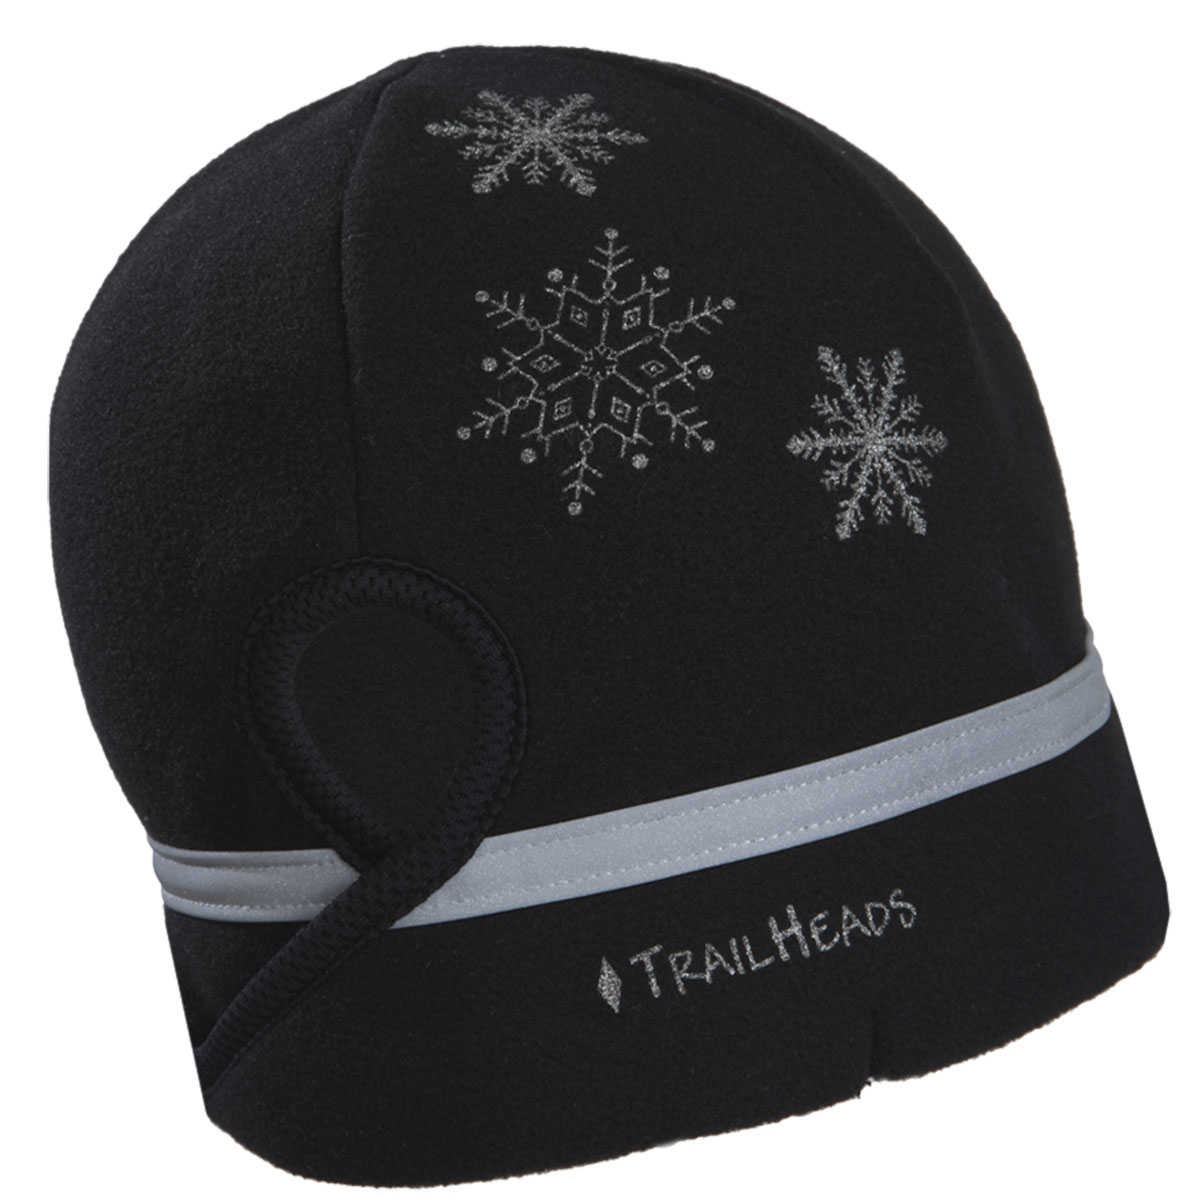 TrailHeads Women's Ponytail Hat - Reflective Cold Weather Running Beanie - black / snowflake